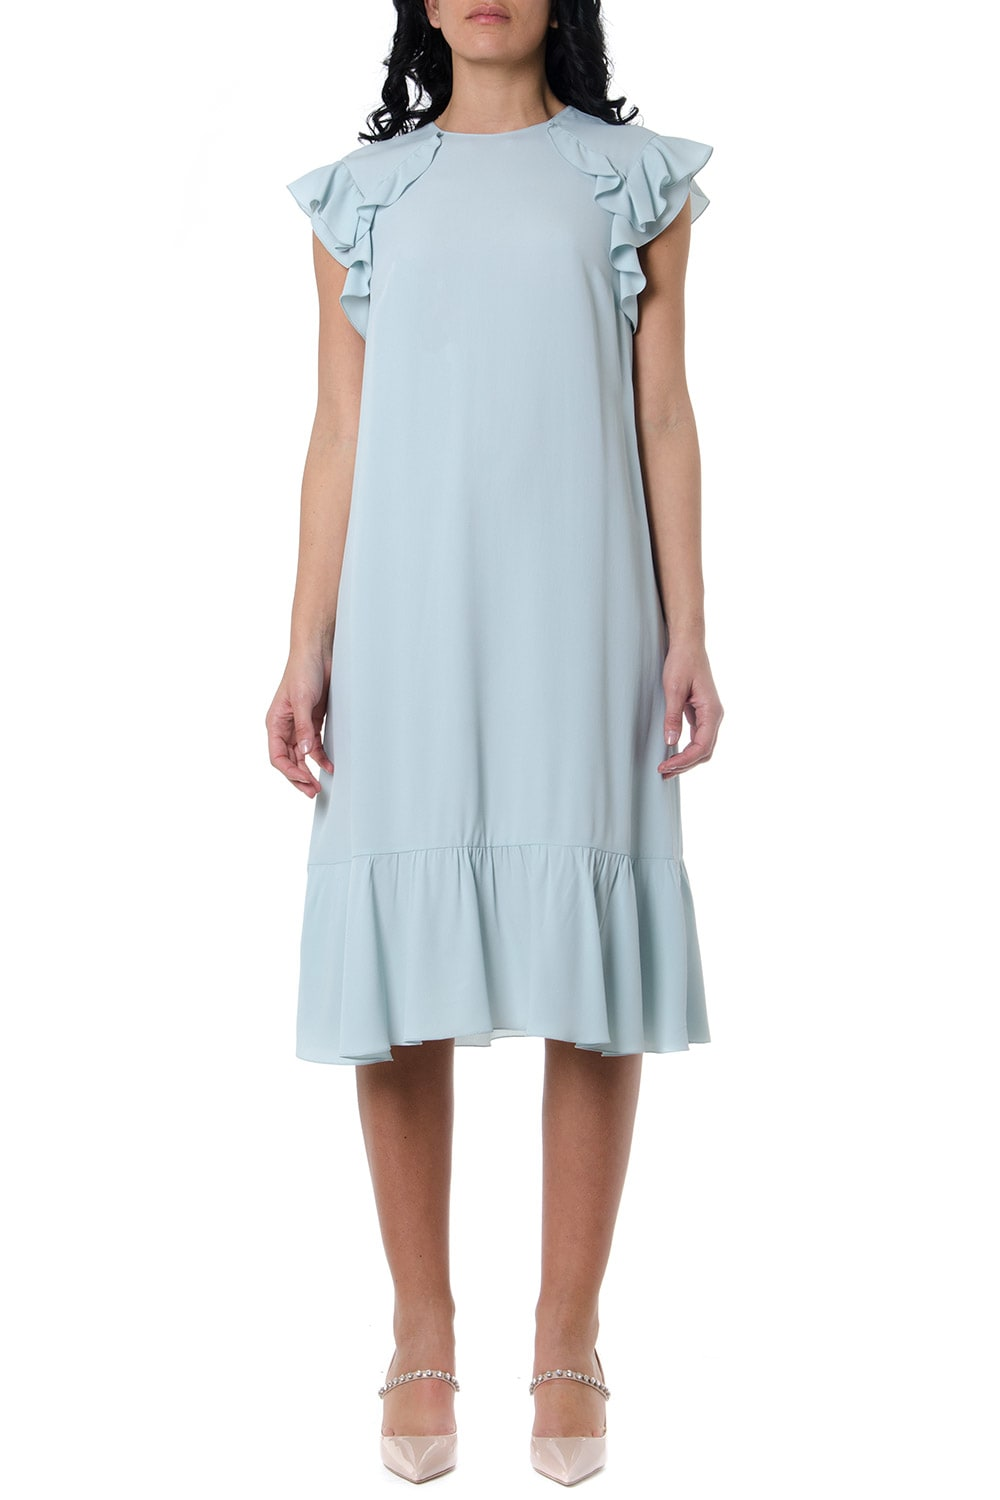 Buy RED Valentino Crepe Dress In Light Blue Color online, shop RED Valentino with free shipping